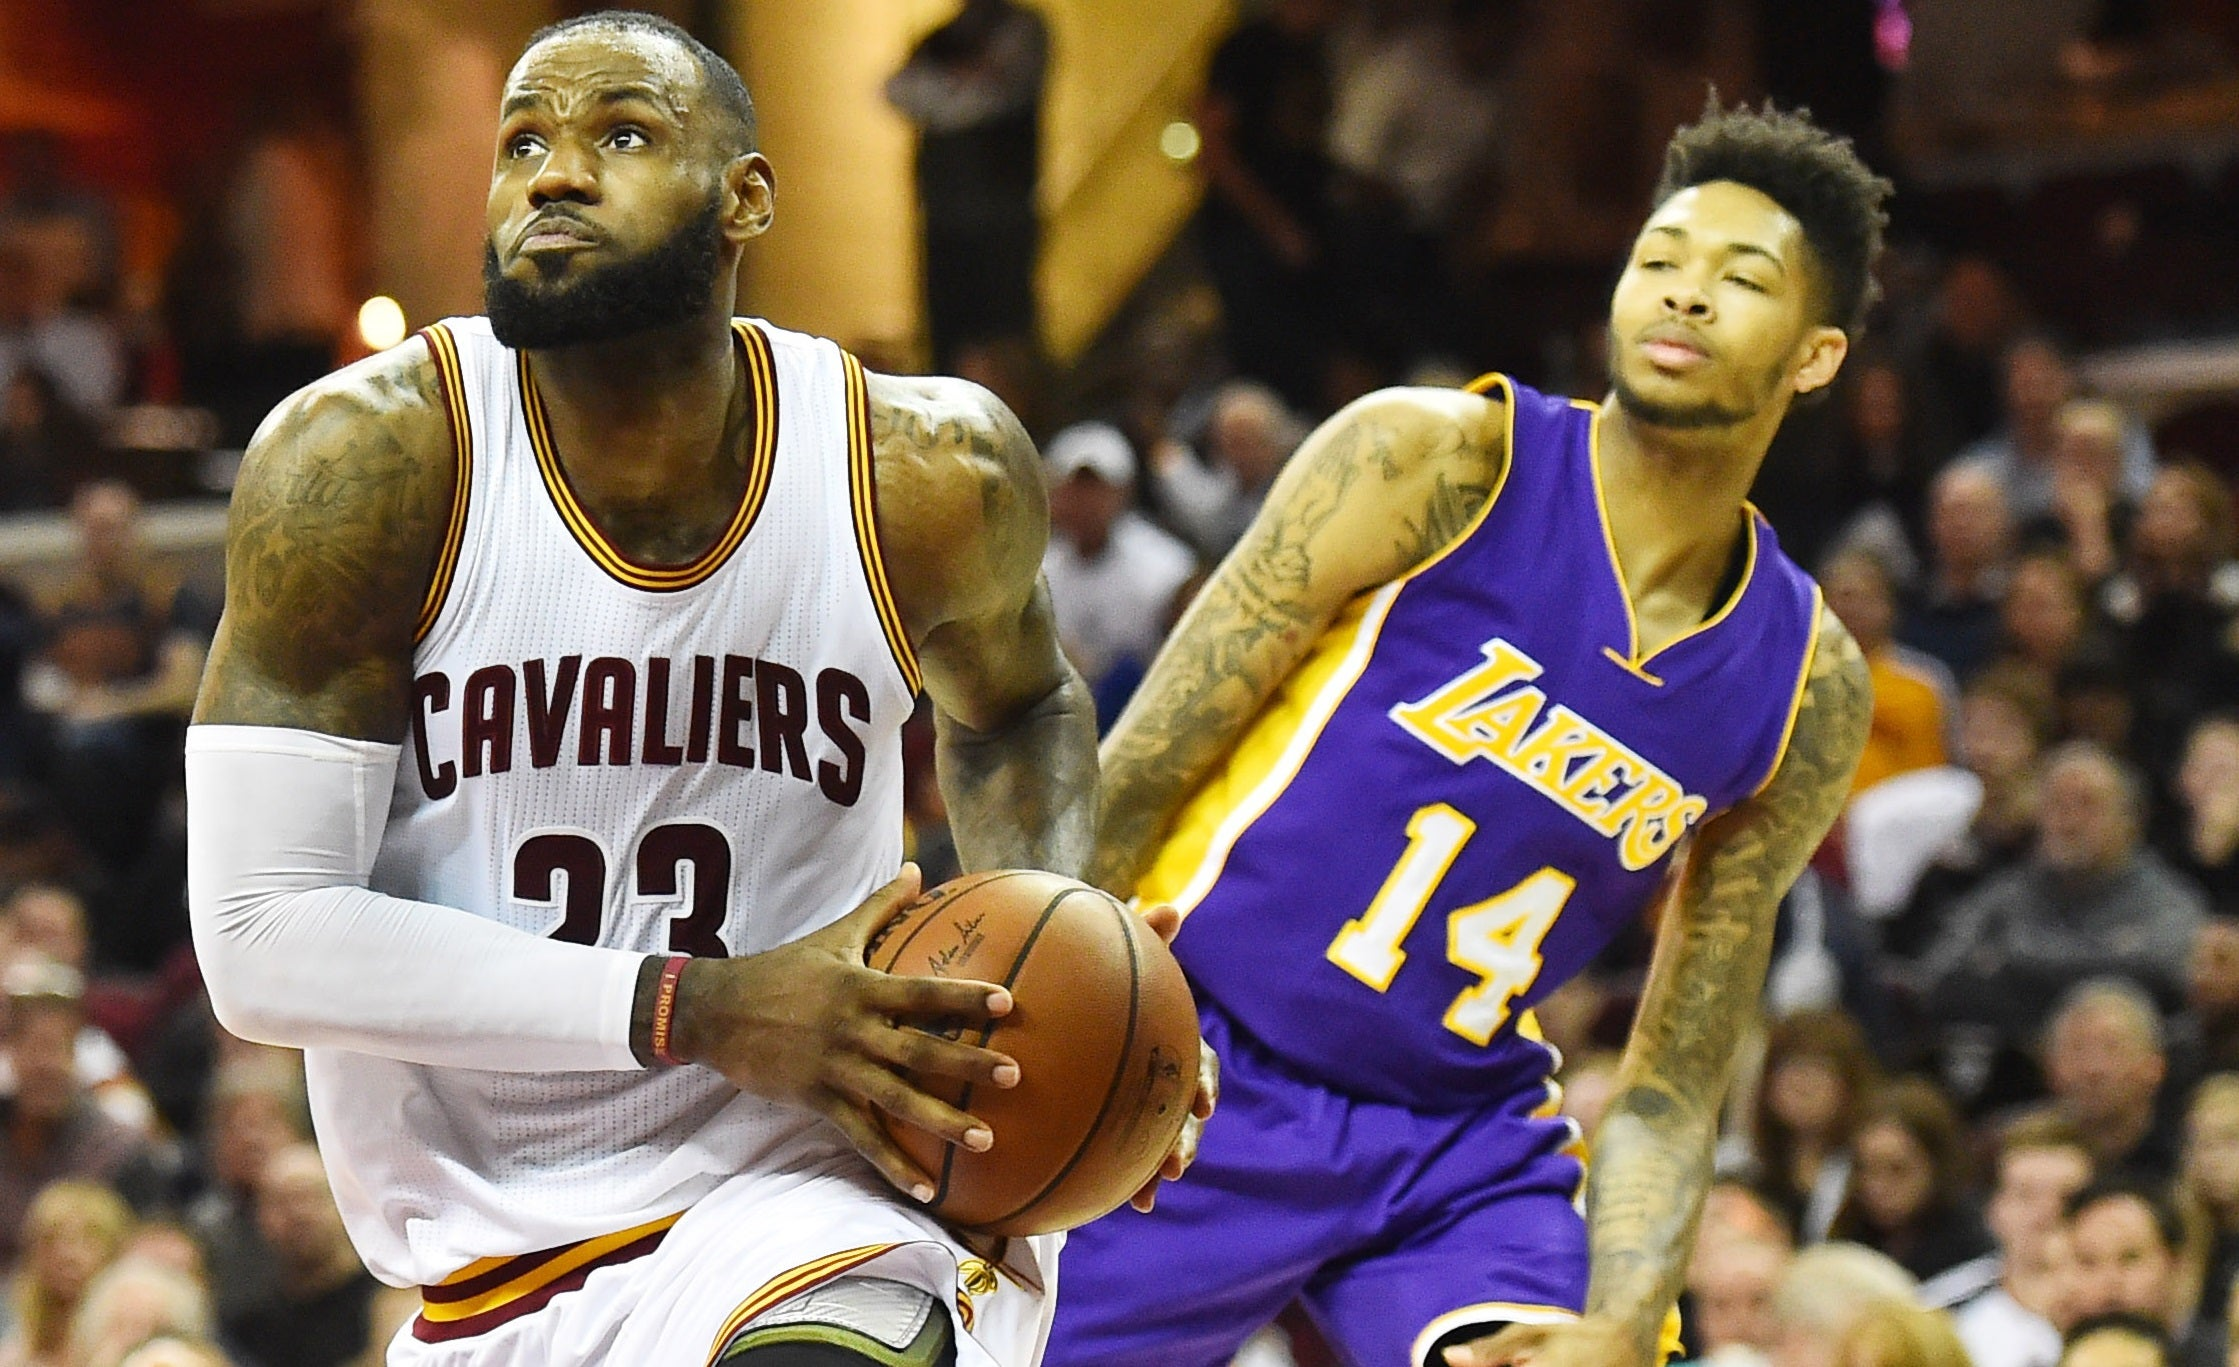 Cleveland Basketball Team >> 5 Nba Teams That Will Shock You Next Season For Better Or